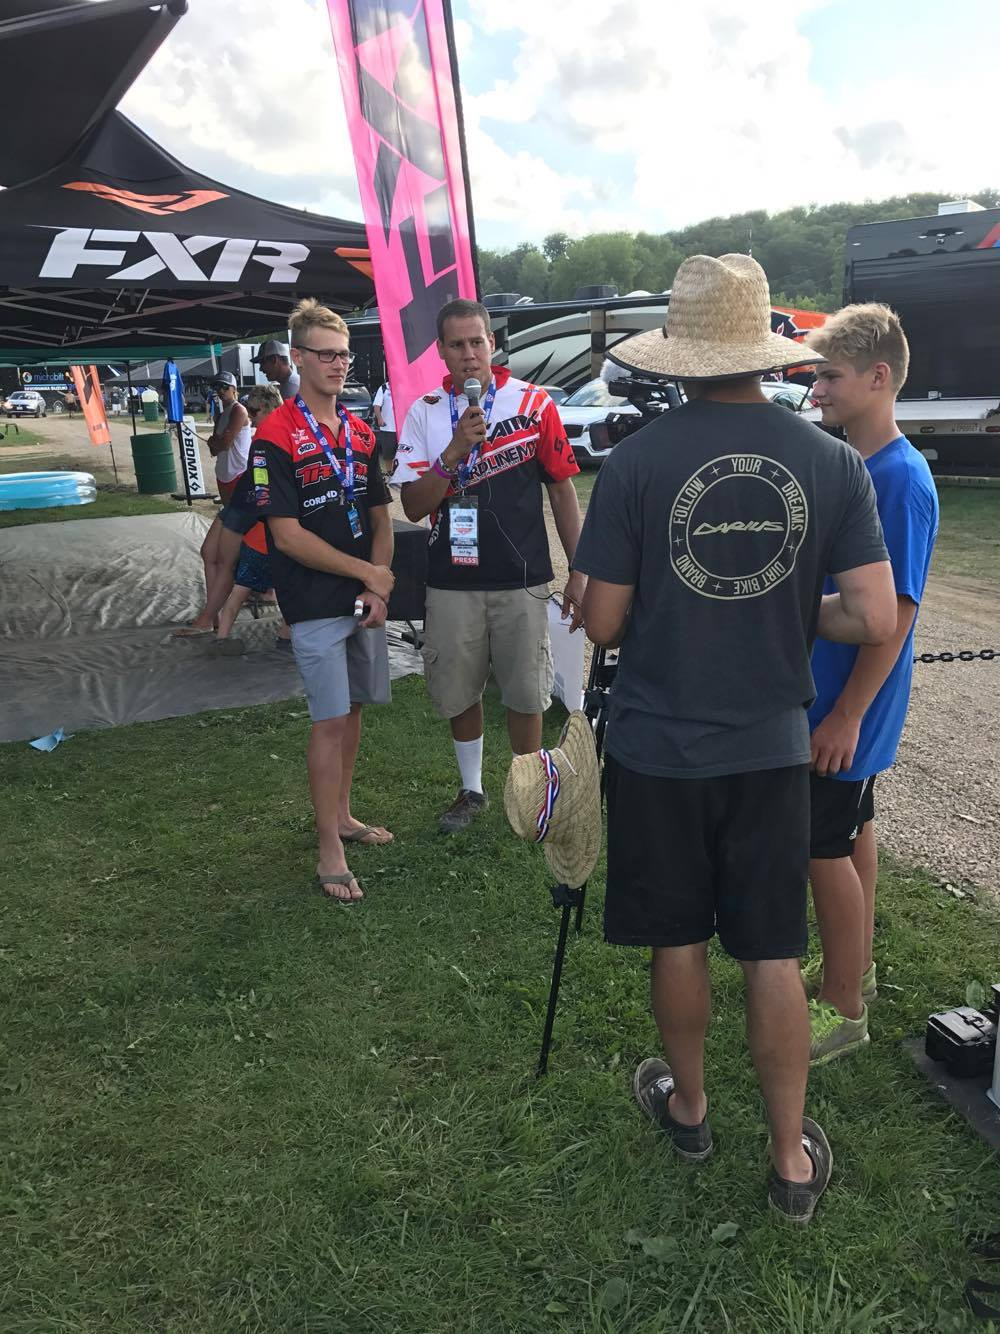 Interviewers were all over Henry all day looking for a chance to get to know the FXR and TCE team rider.